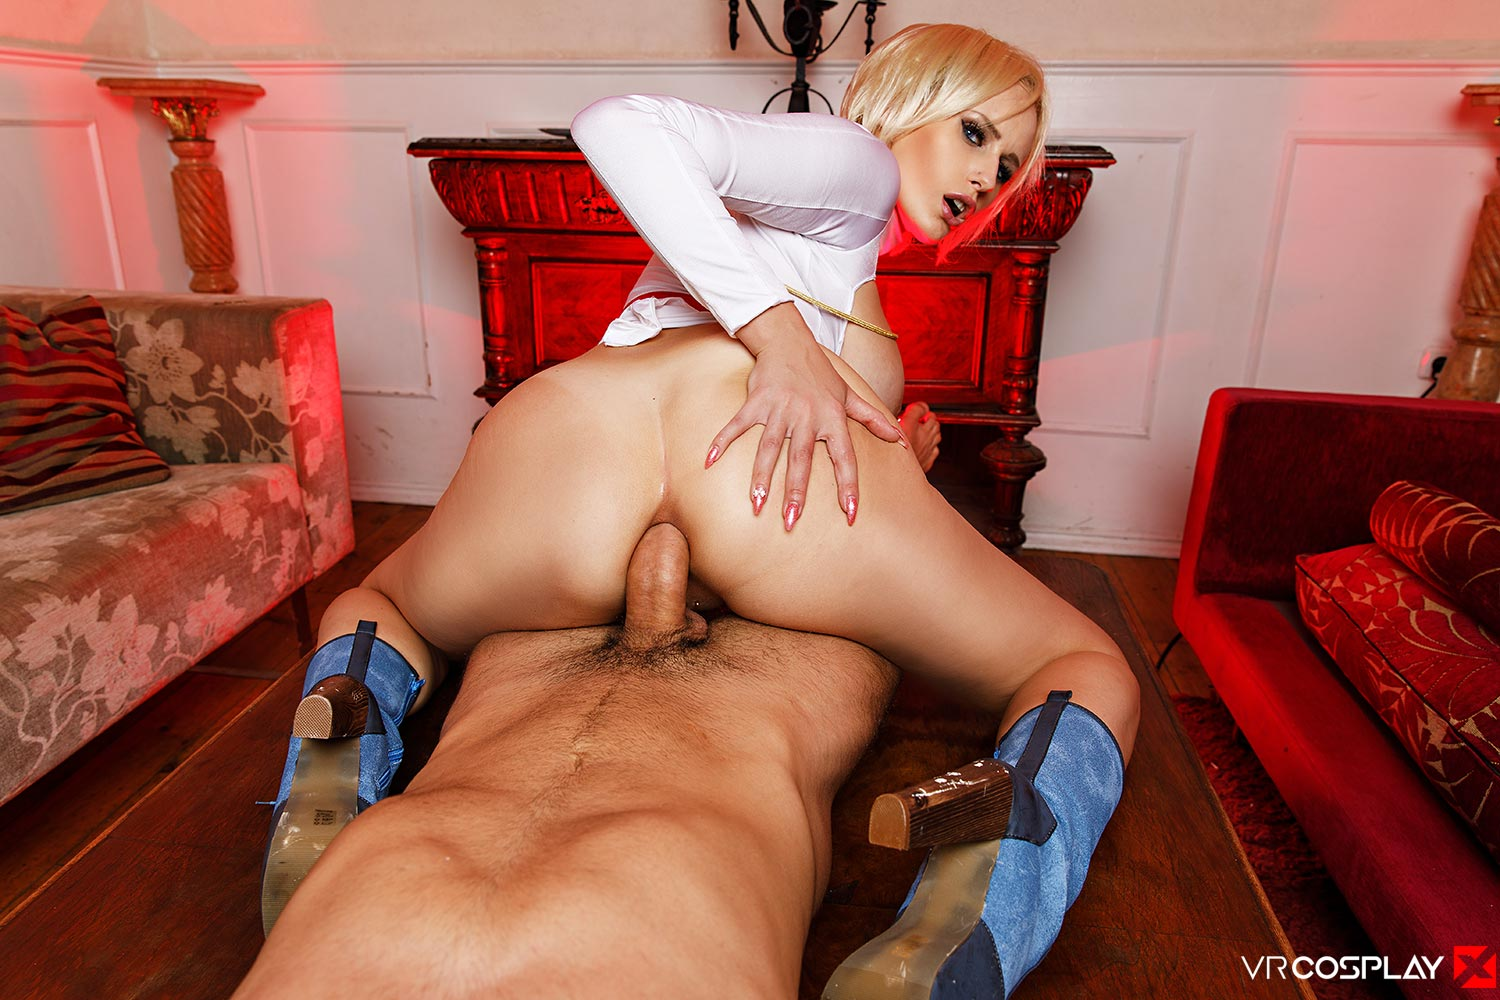 Sex trek fuck me up scotty storyline - 2 part 2